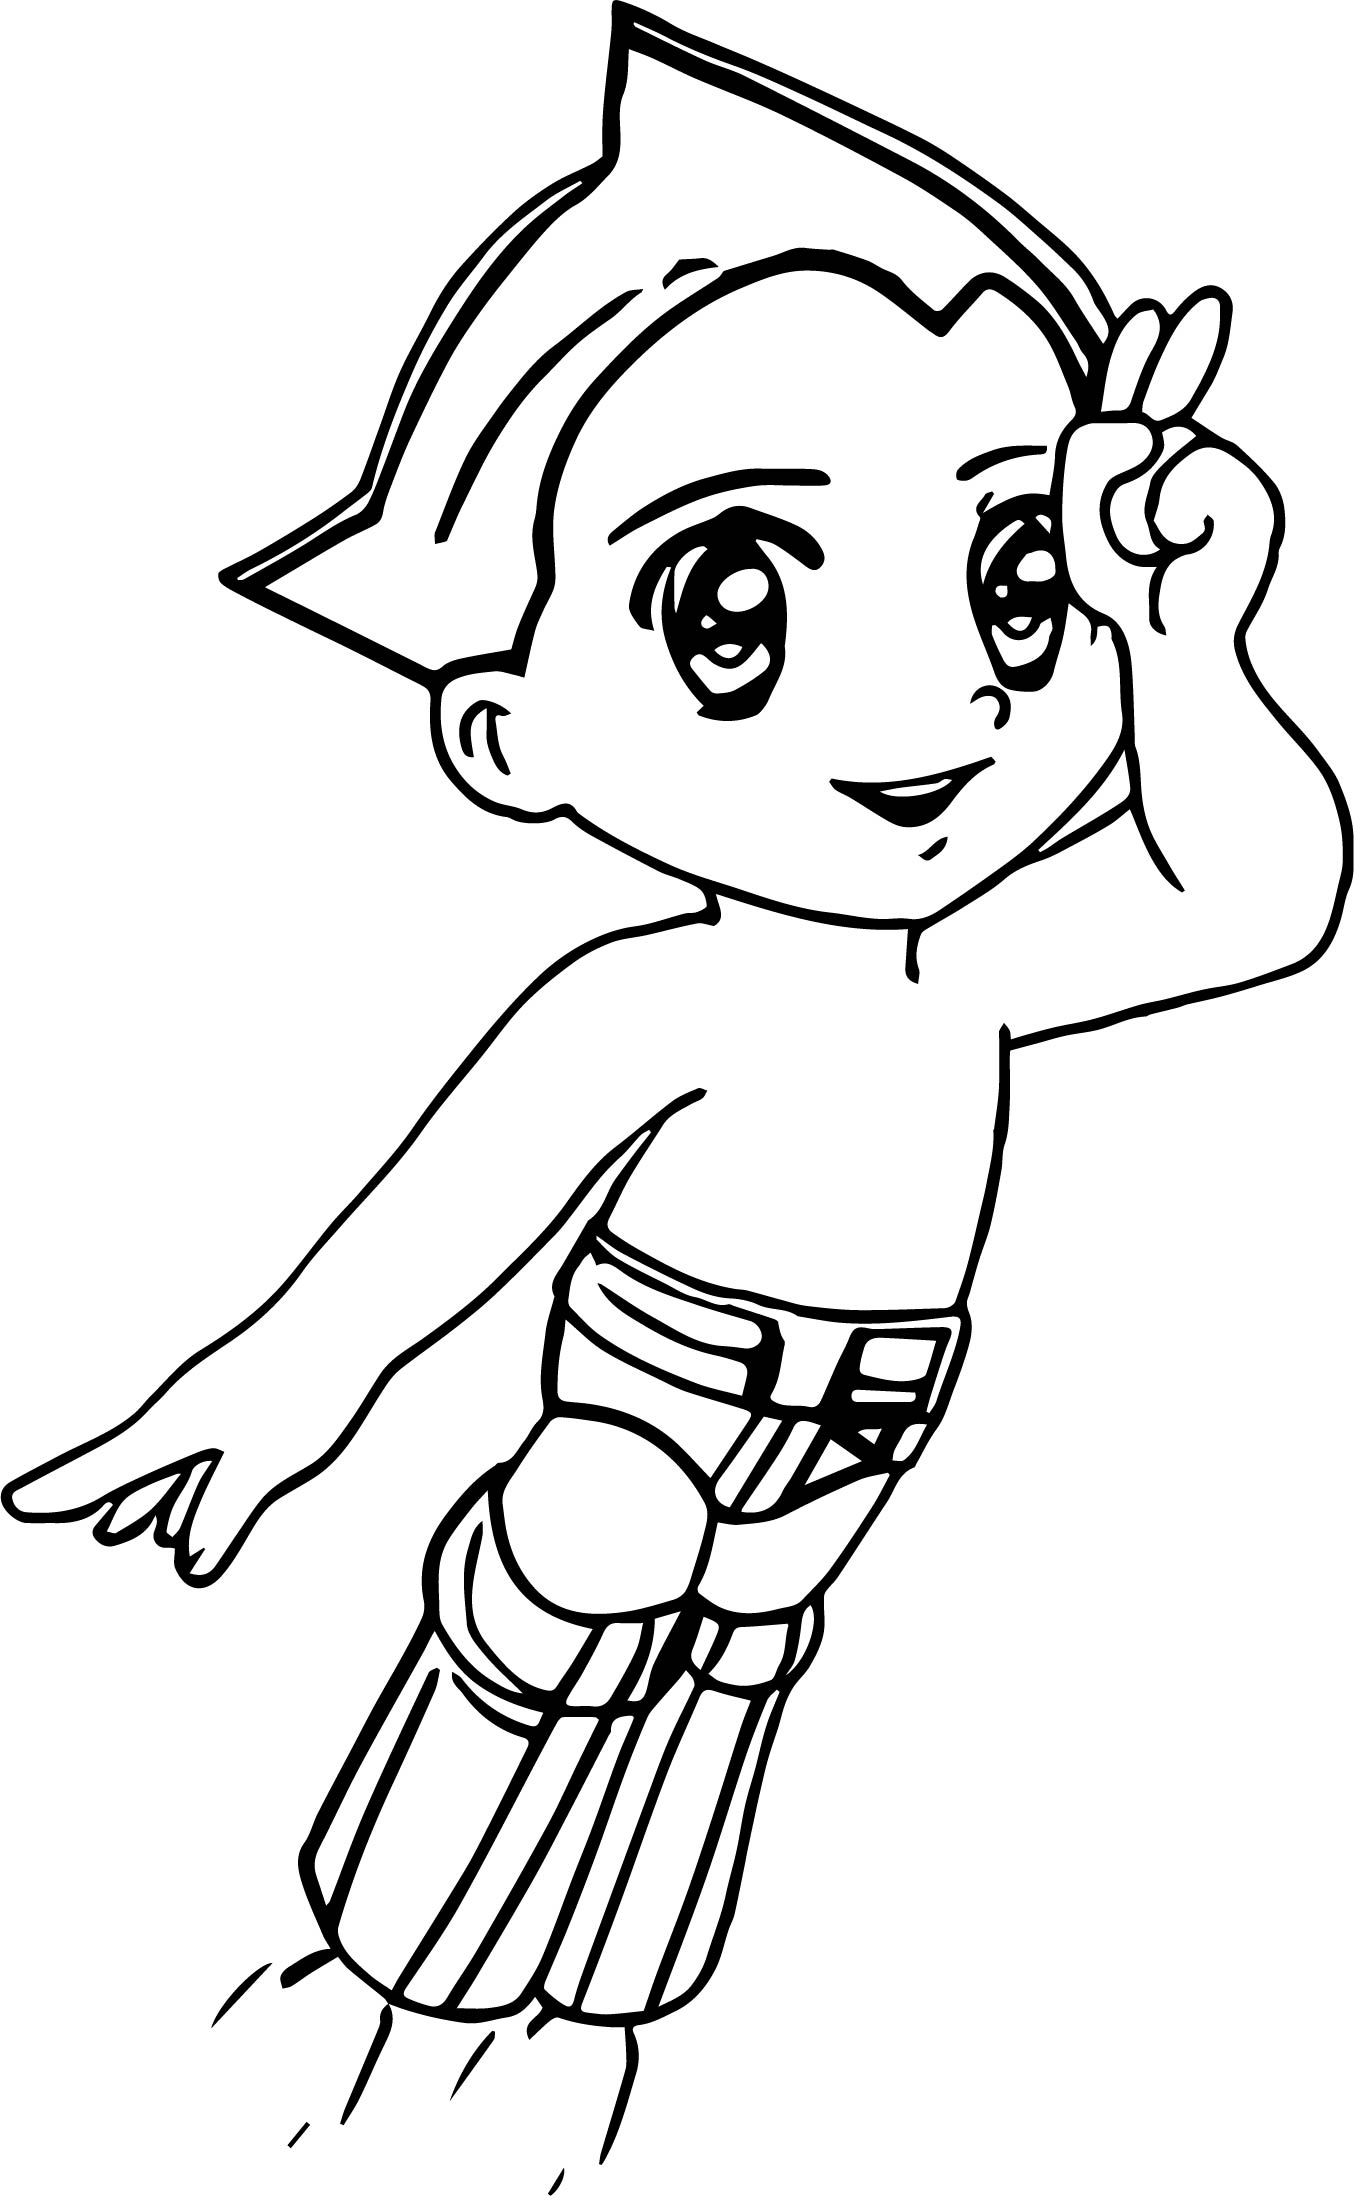 Astroboy Flying Coloring Page